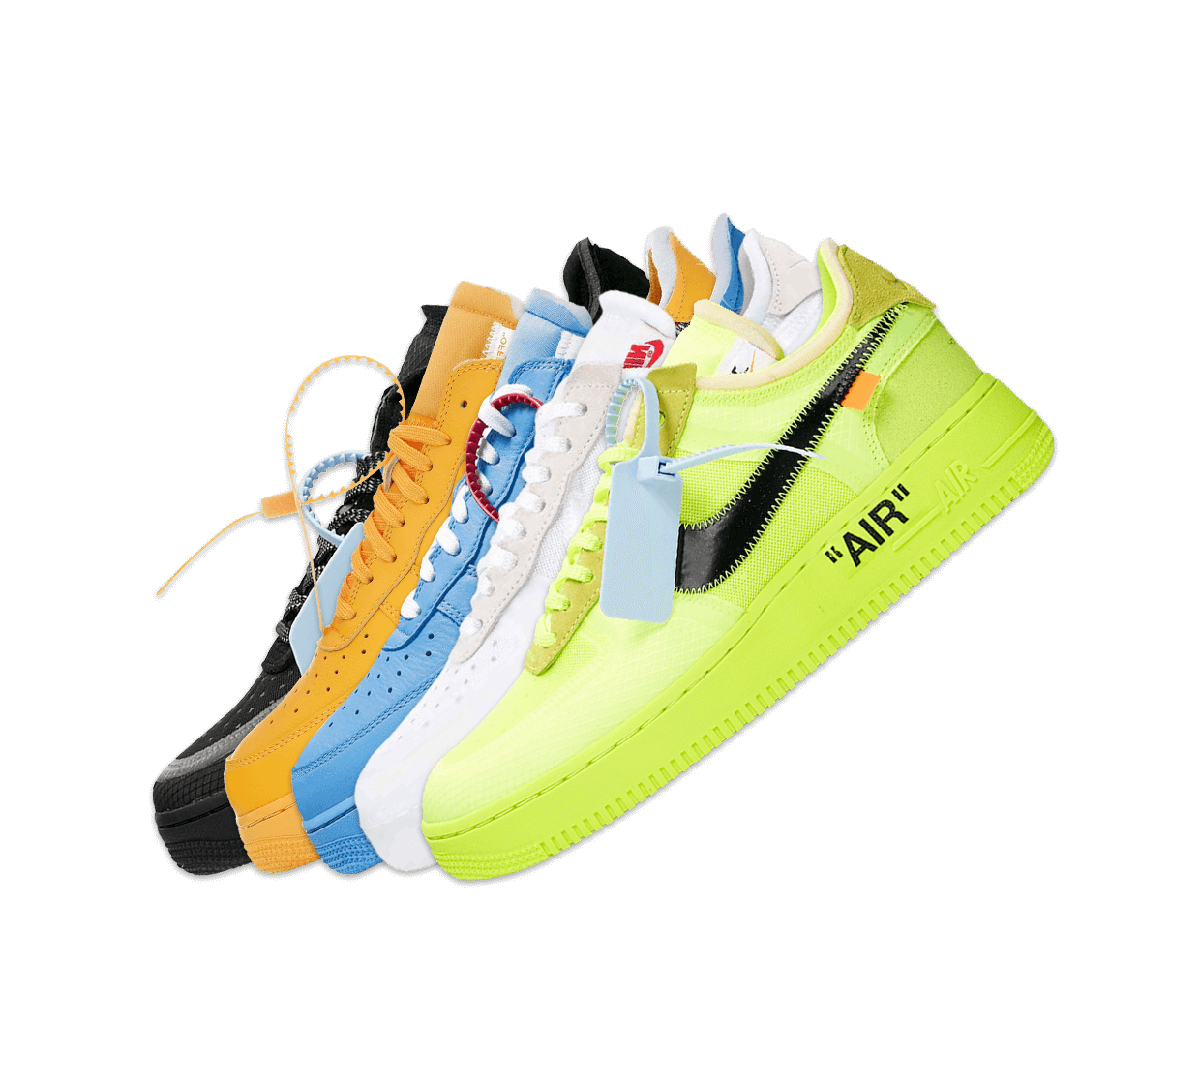 Nike Air Force 1 Off-White Collection Image